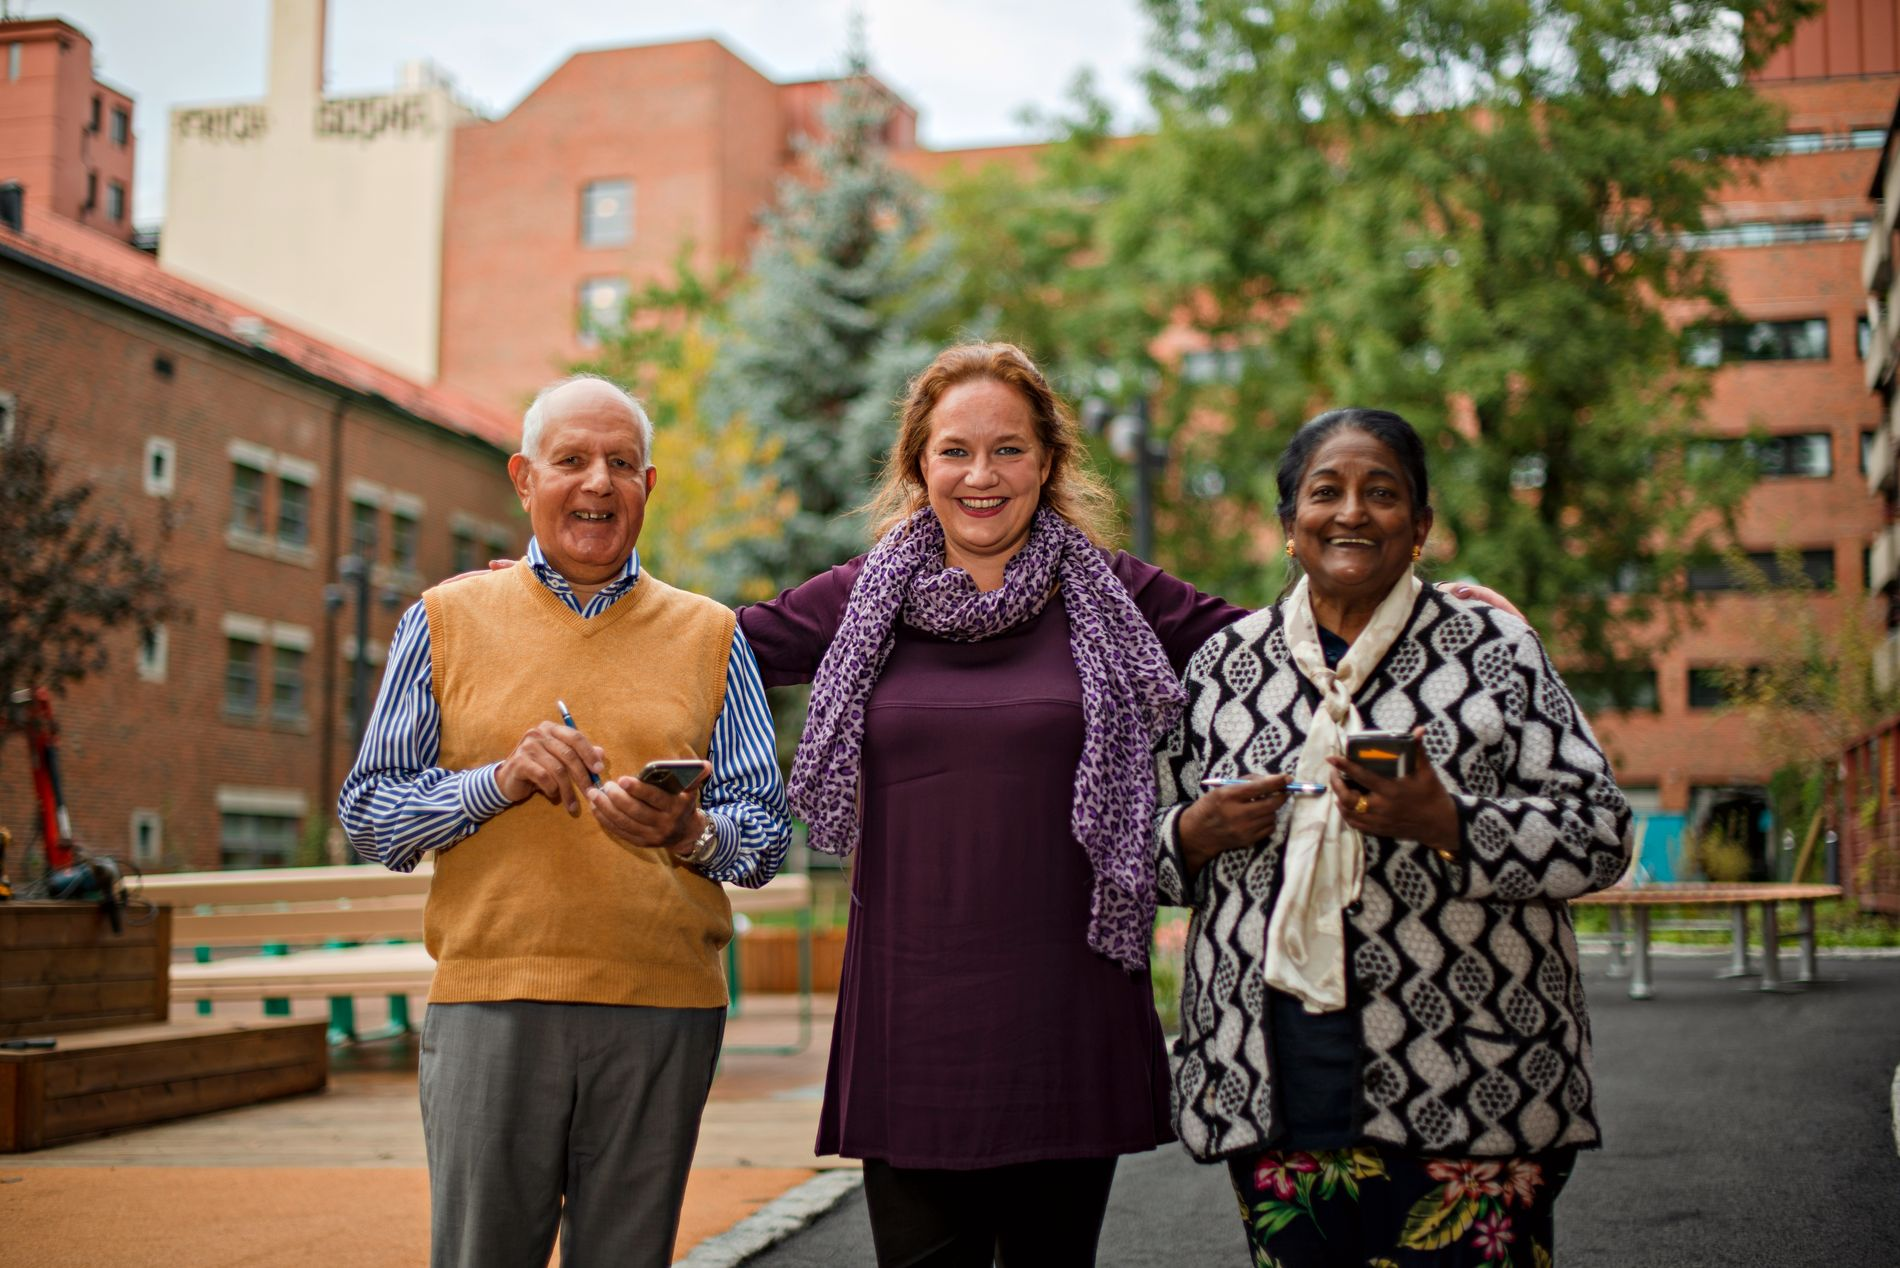 COMMUNITY: Mohammed and Rani can ask Marthe (middle) about everything they ask themselves in the digital world.